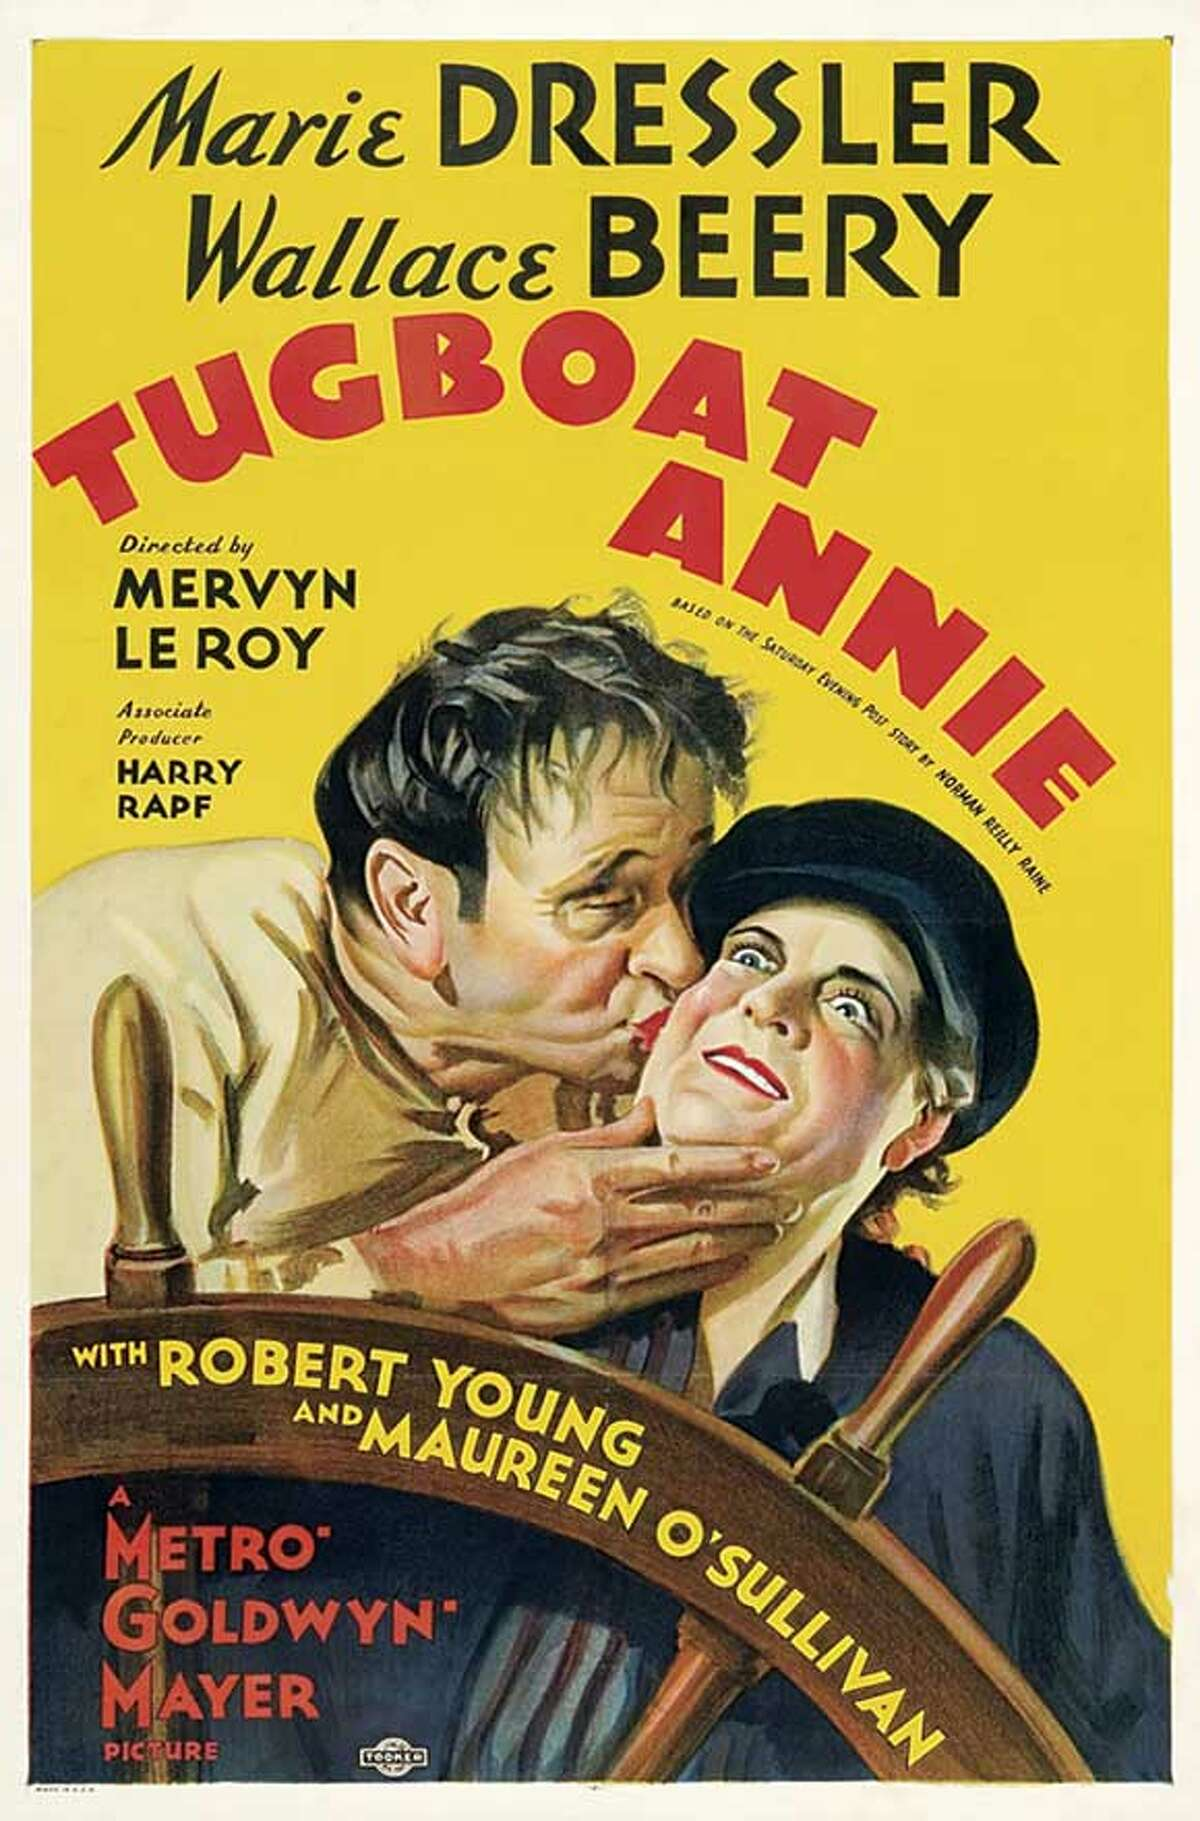 """""""Tugboat Annie"""" - Starring Marie Dressler and Wallace Berry, this 1933 film drew from stories based on the life of tugboat tycoon Thea Foss."""